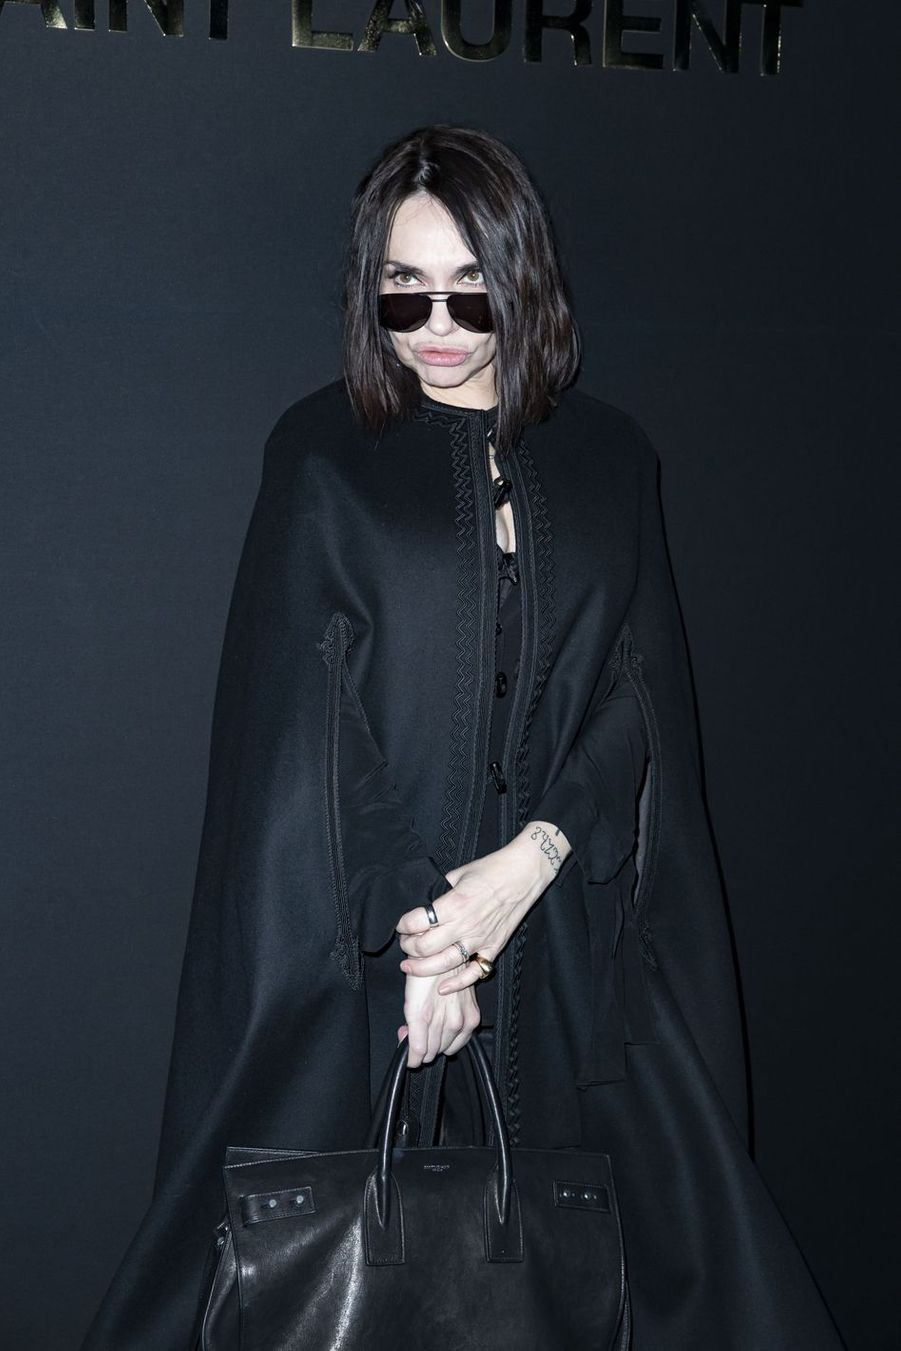 Béatrice Dalle au défilé Saint Laurent lors de la Fashion Week de Paris le 26 février 2019